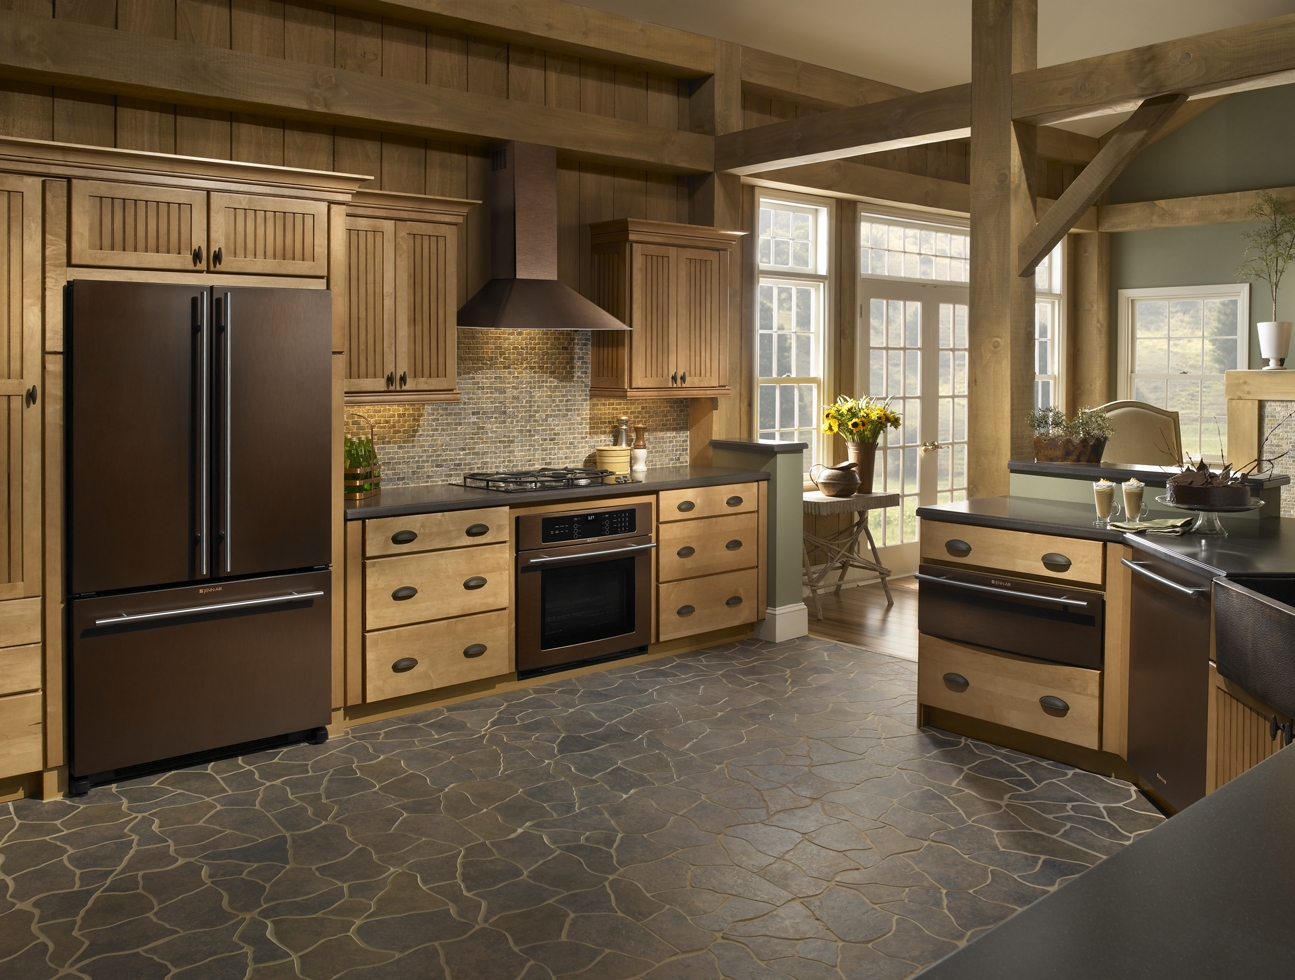 Appliance color choice for new home Stainless or Oiled Bronze?